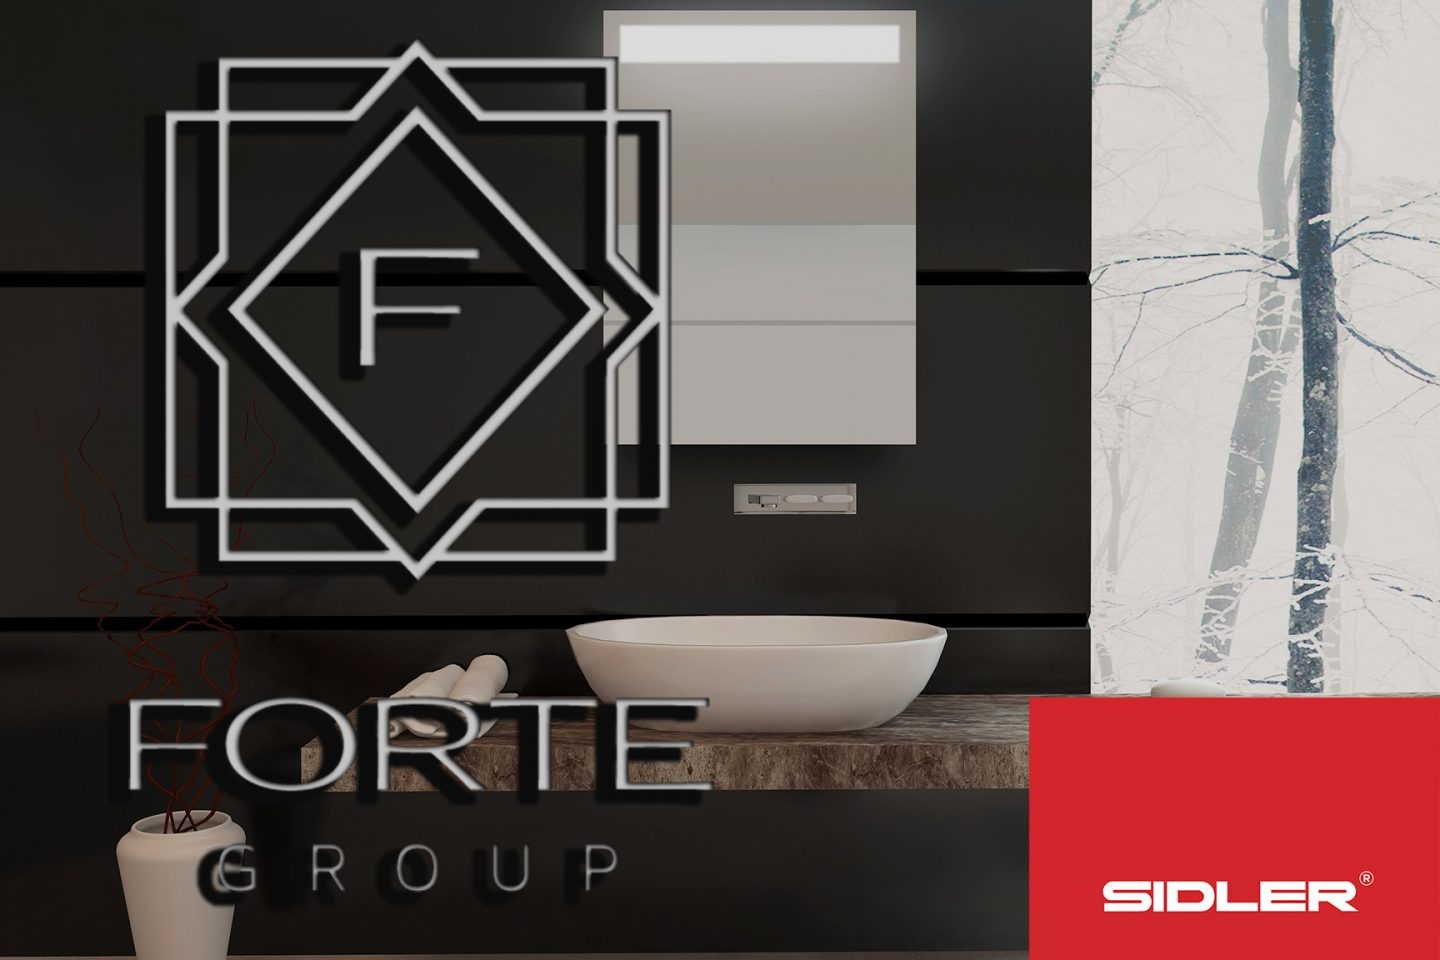 SIDLER FORTE GROUP ANNUAL CONFERENCE 2019